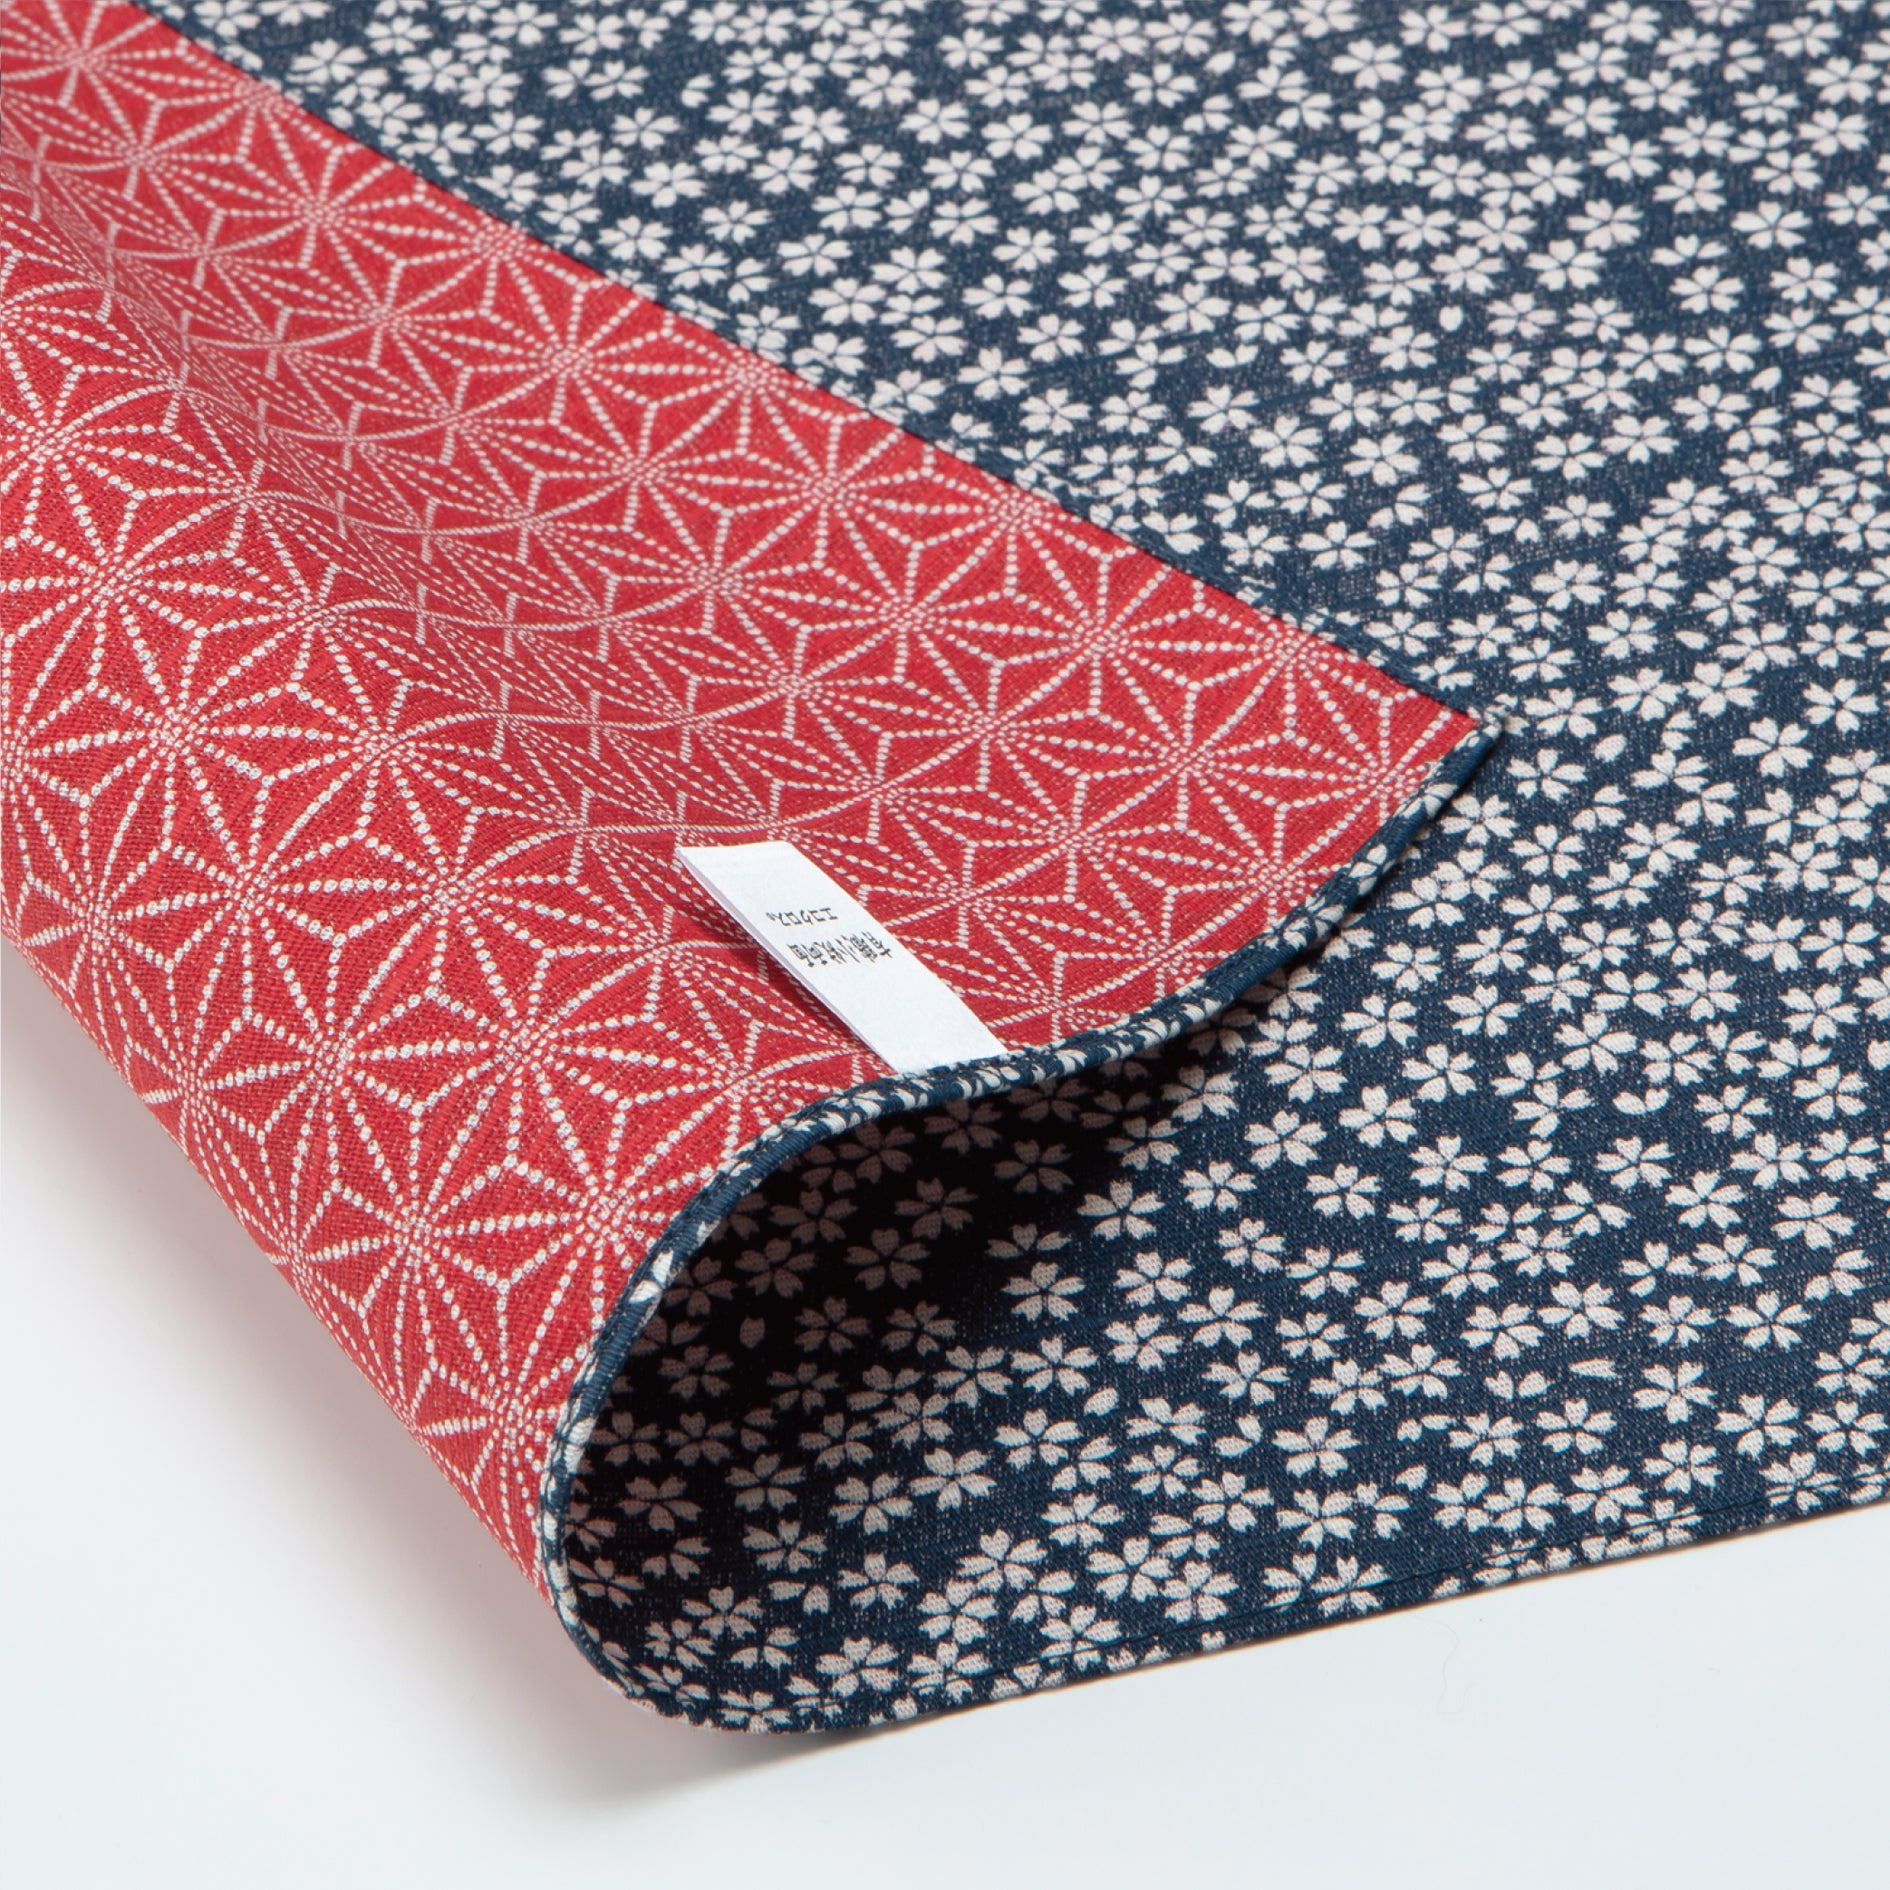 Double Sided Furoshiki Wrapping Cloth | Asanoha Sakura Navy & Red by Sanyo Shoji - Bento&co Japanese Bento Lunch Boxes and Kitchenware Specialists